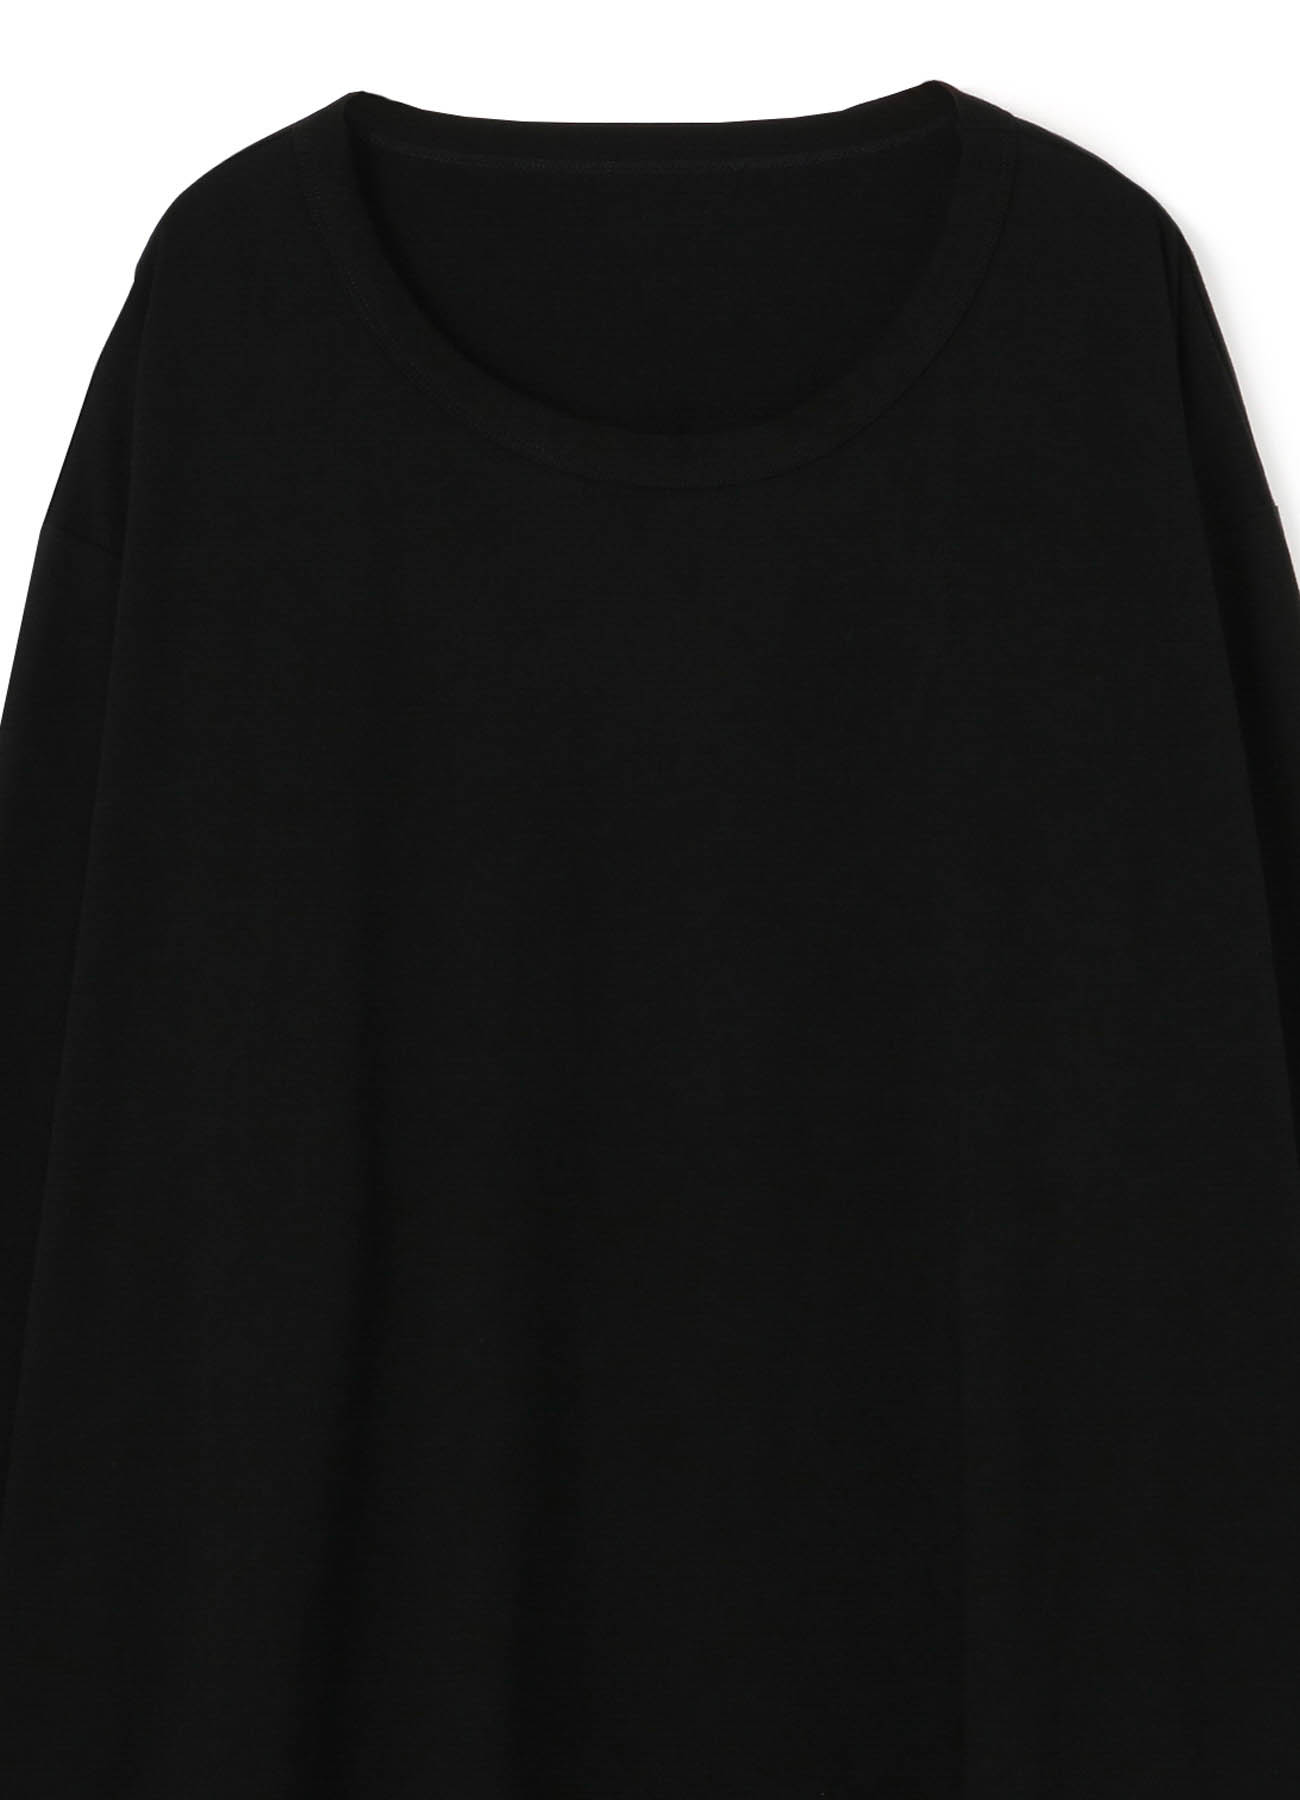 30/cotton Jersey Side Button Long Sleeve Jumbo T